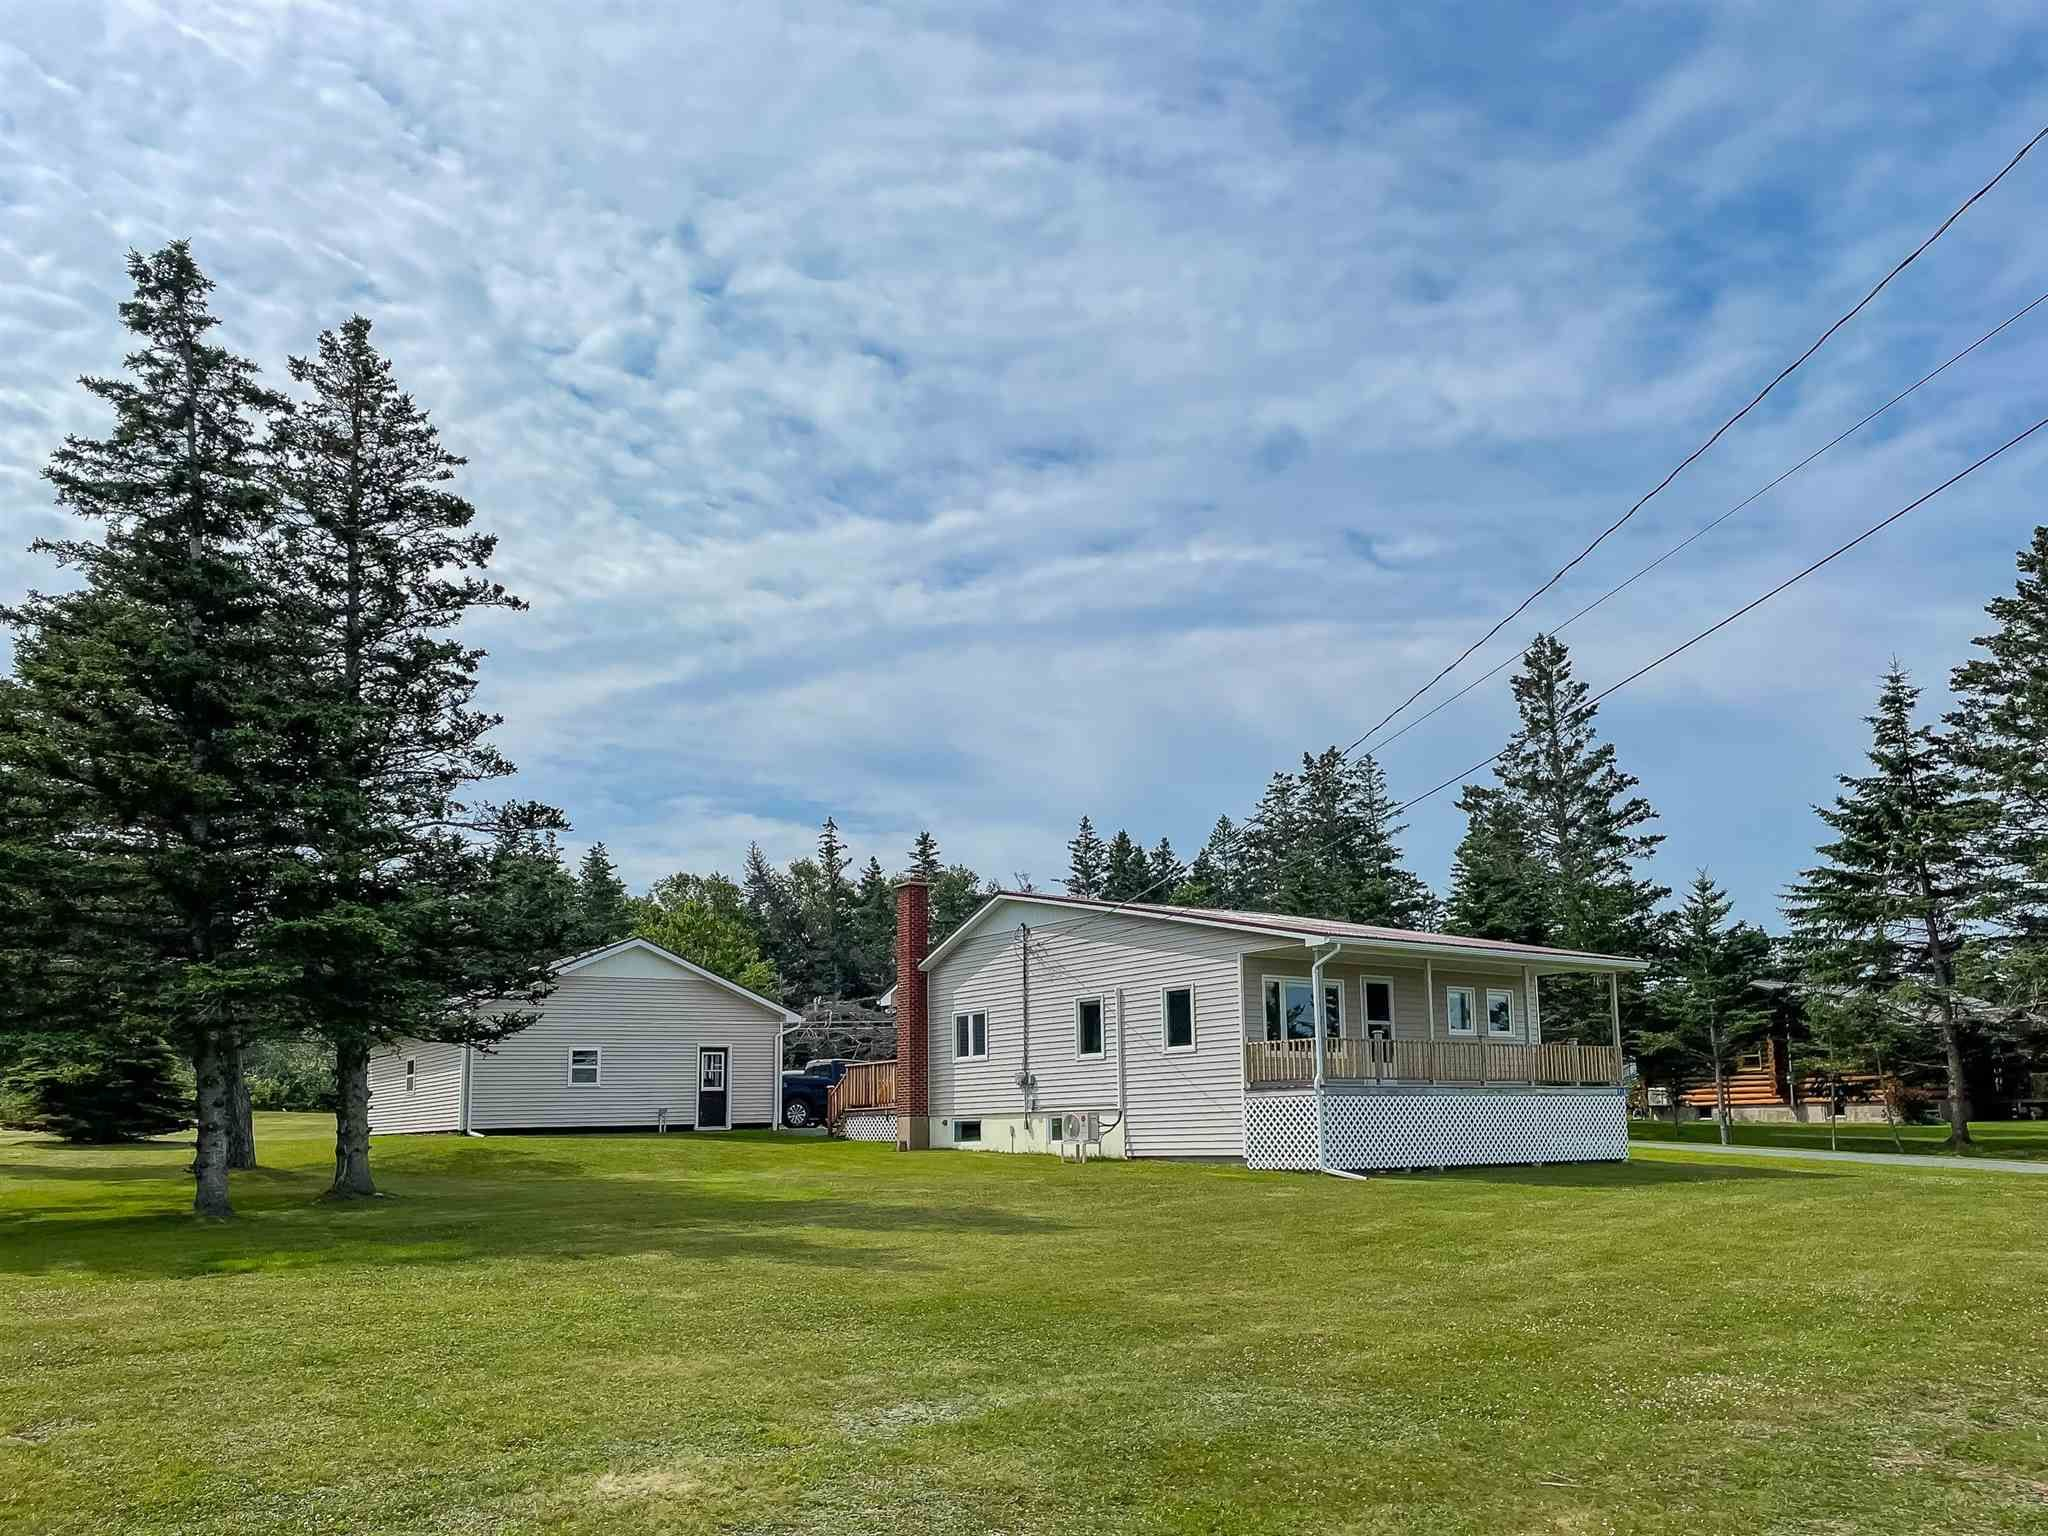 Main Photo: 718 French Cross Road in Morden: 404-Kings County Residential for sale (Annapolis Valley)  : MLS®# 202117981